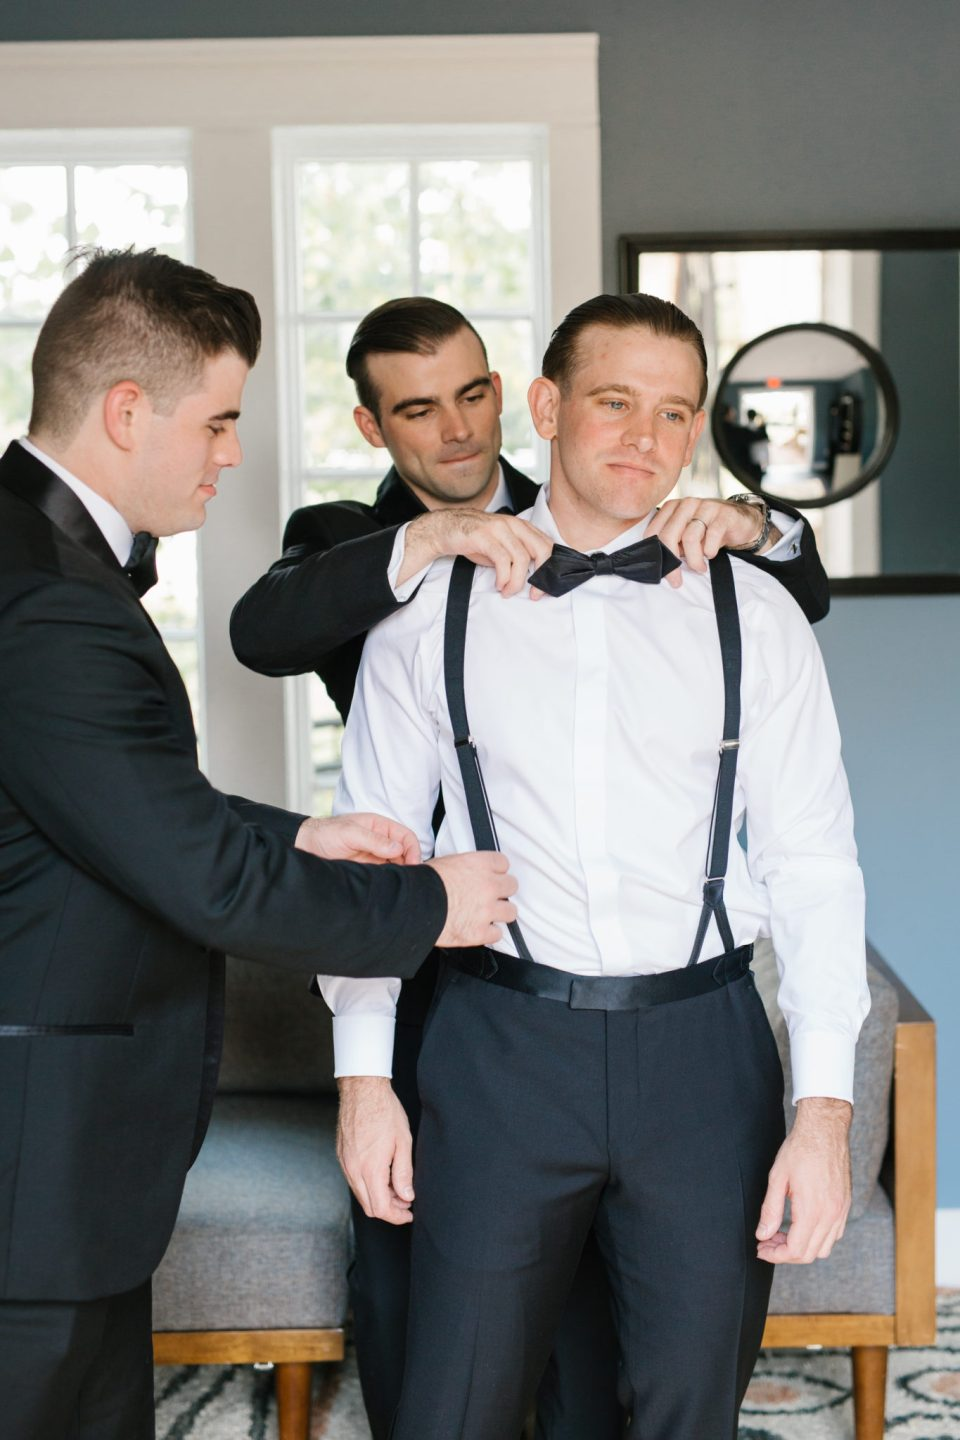 groom gets into suit with groomsmen's help